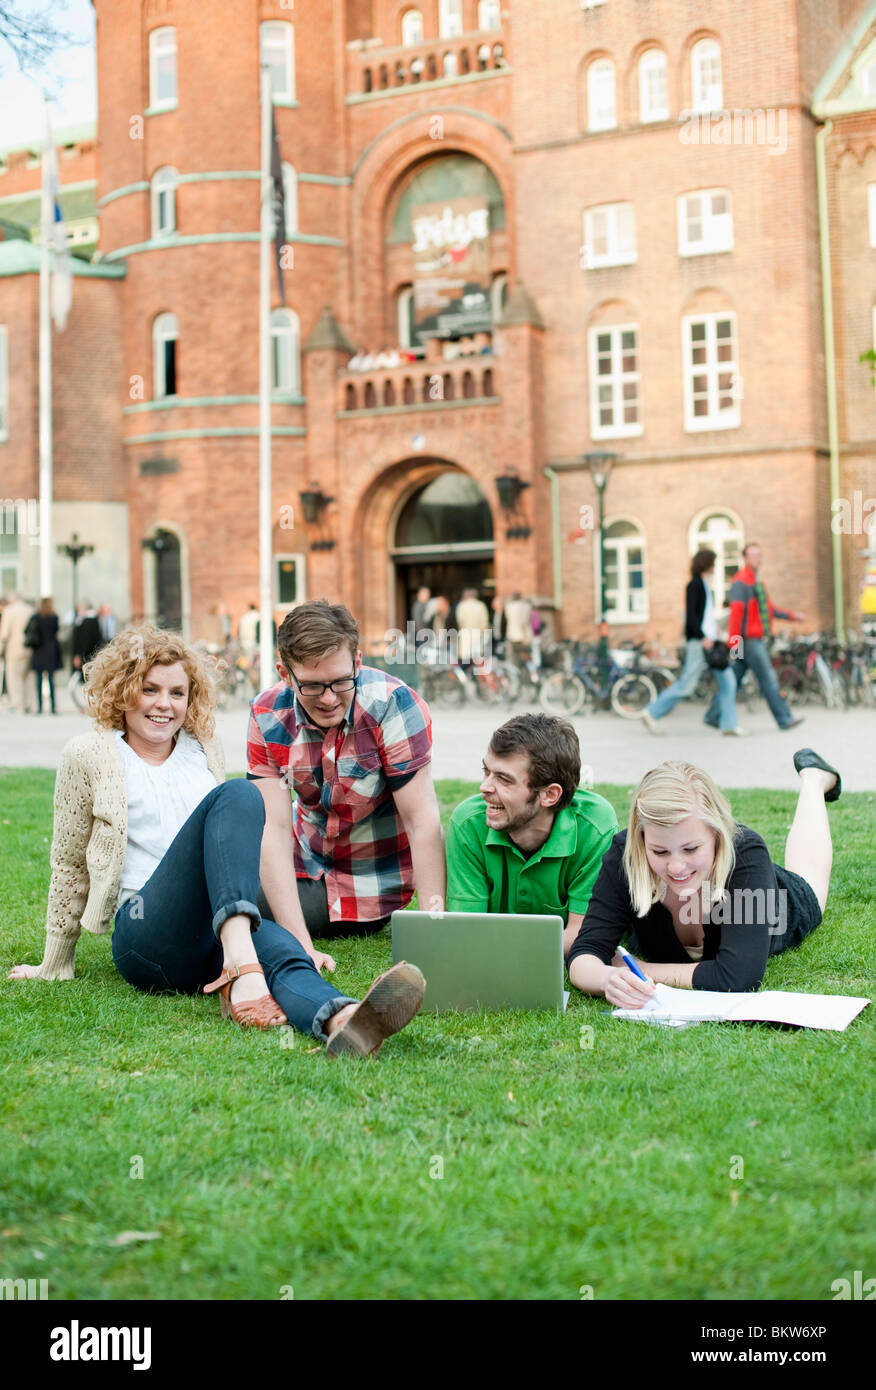 Group of students on lawn - Stock Image